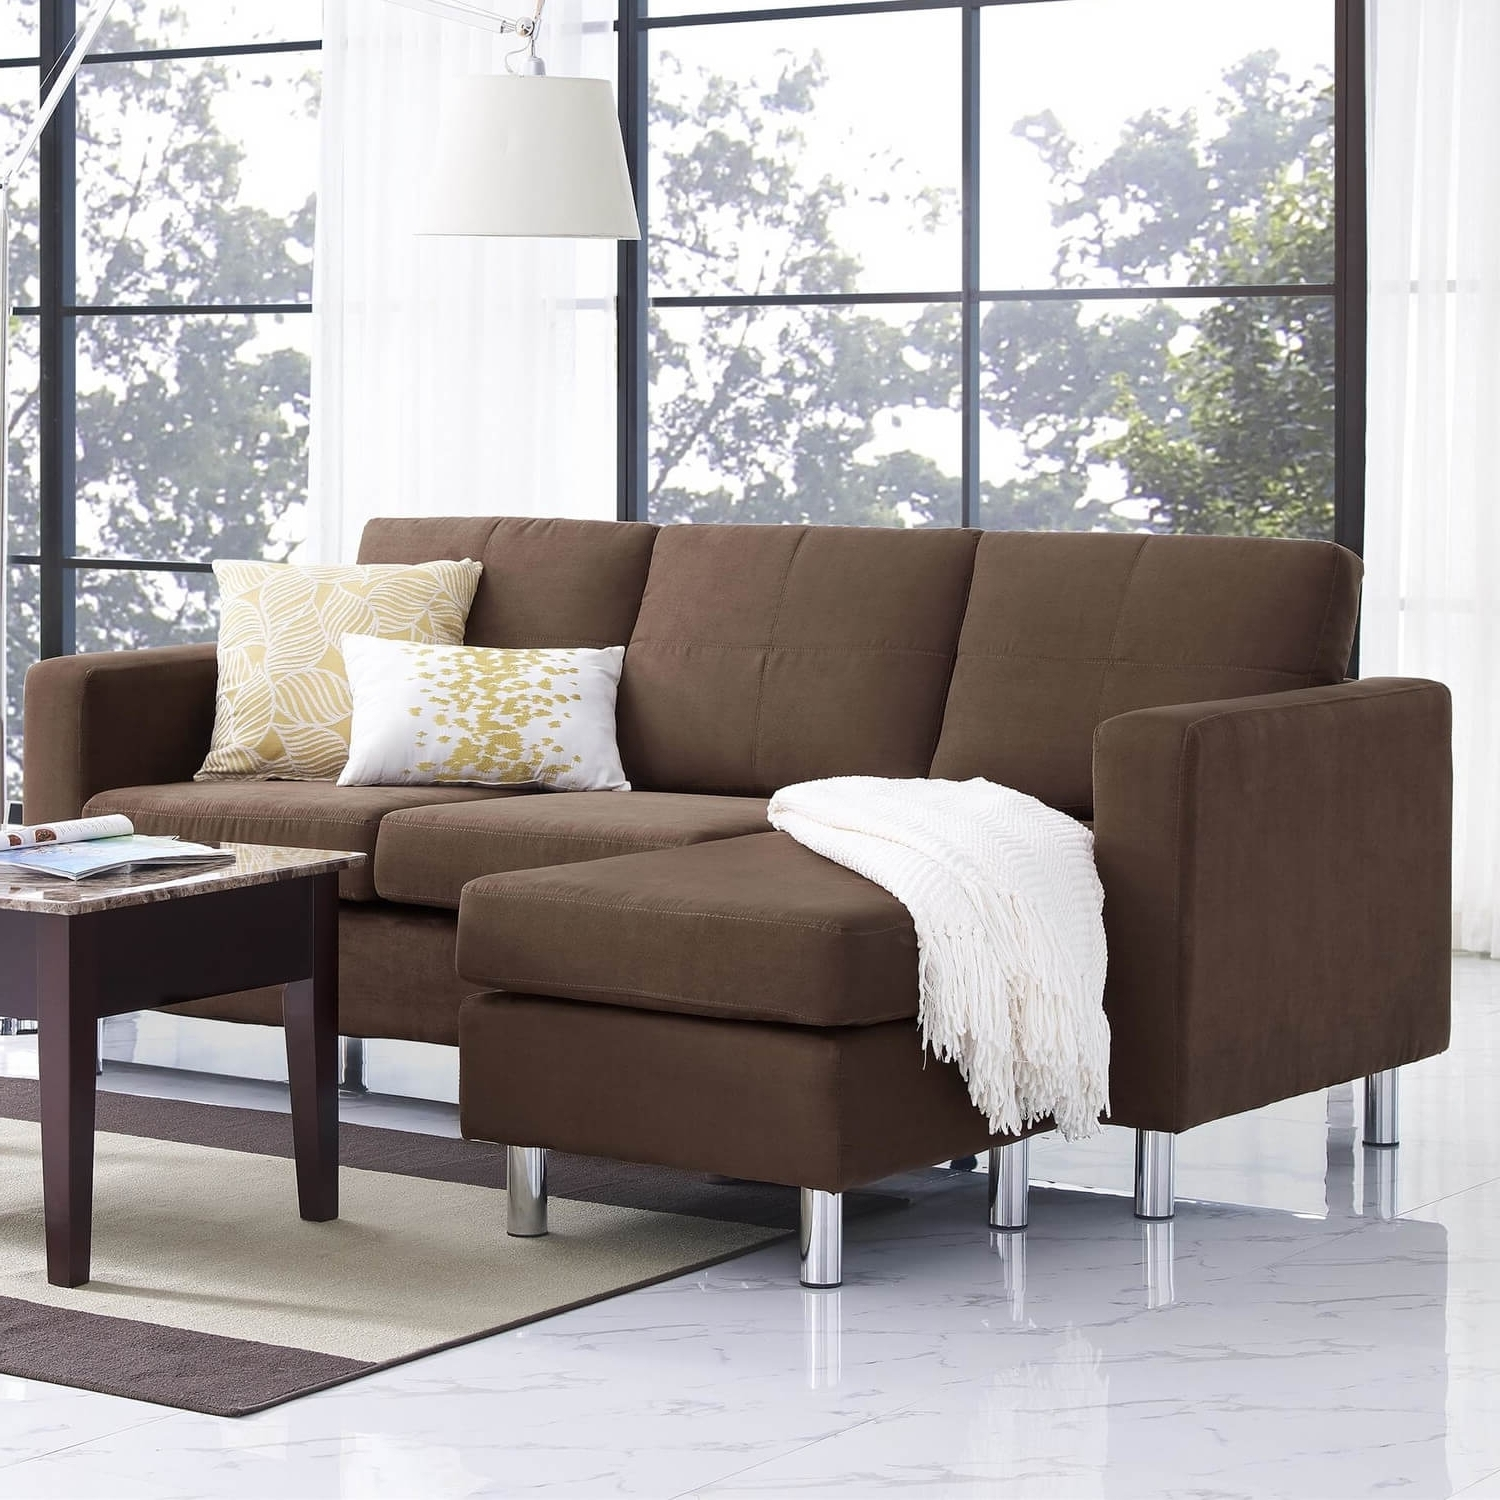 Most Current Sectional Sofa Under 500 Dollars • Sectional Sofa For Sectional Sofas Under (View 2 of 20)